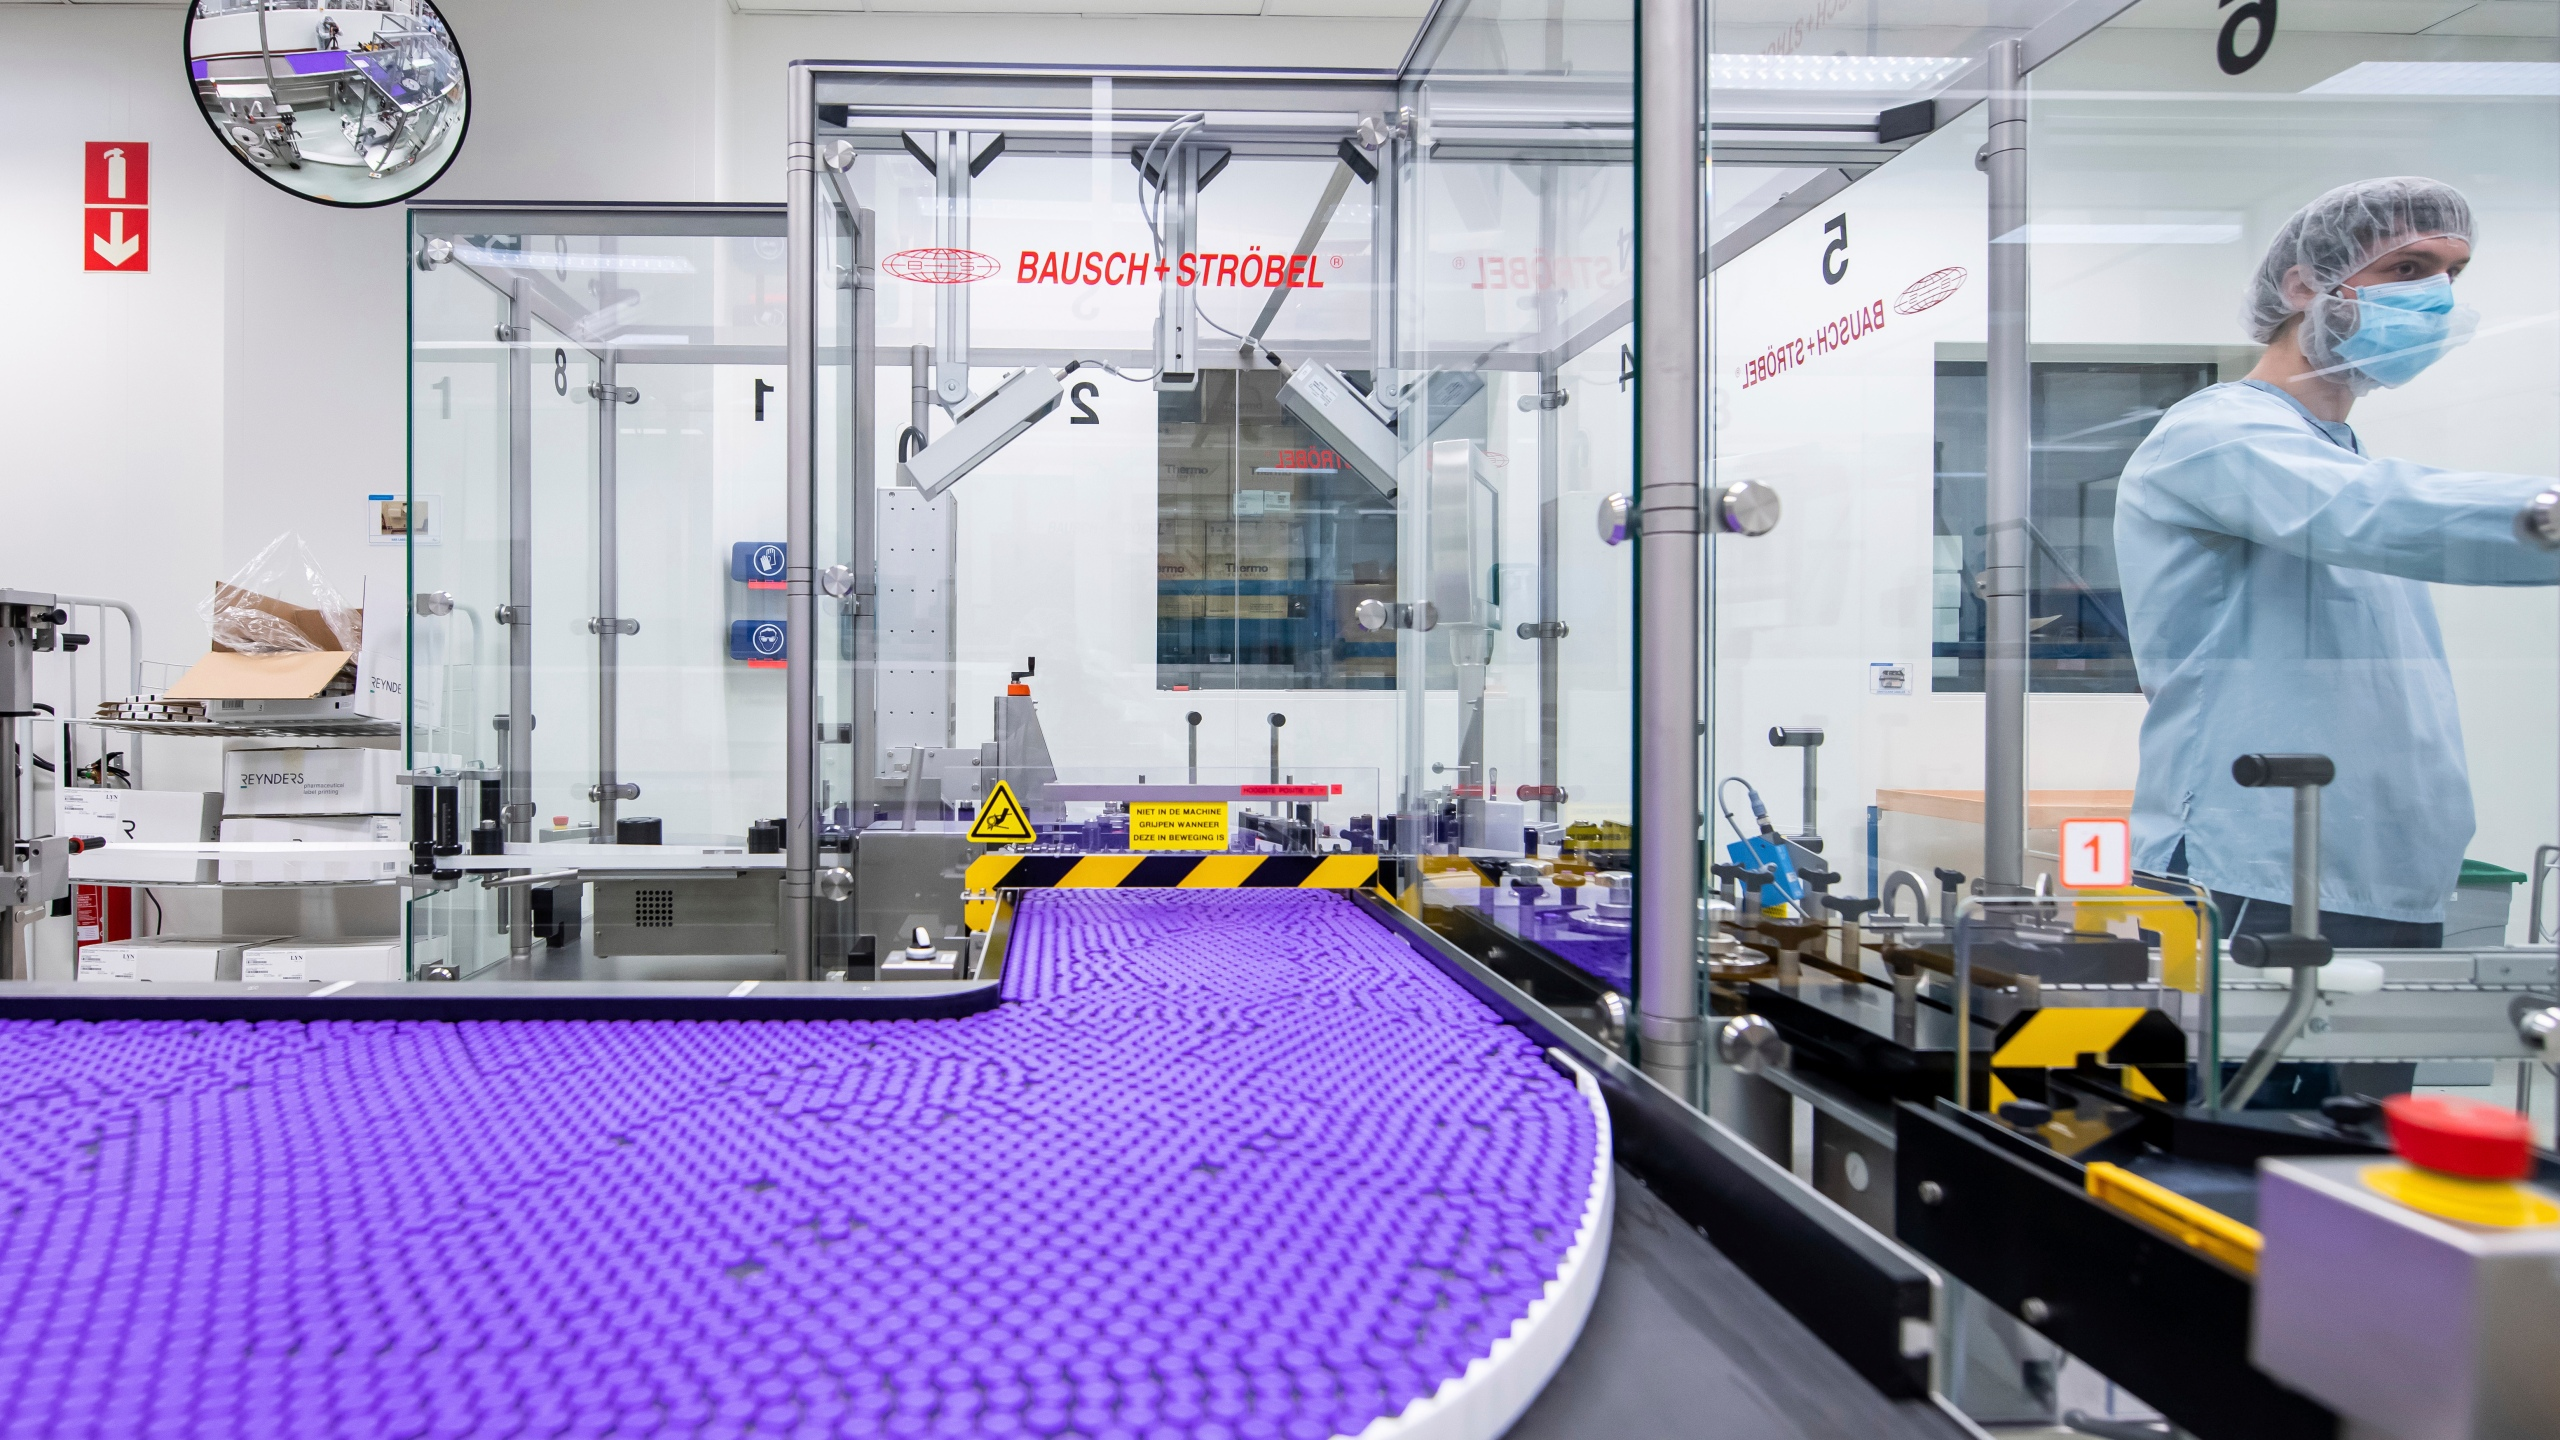 In this March 2021 photo provided by Pfizer, a technician works on a line for packaging preparation for the Pfizer-BioNTech COVID-19 vaccine at the company's facility in Puurs, Belgium. (Pfizer via AP)